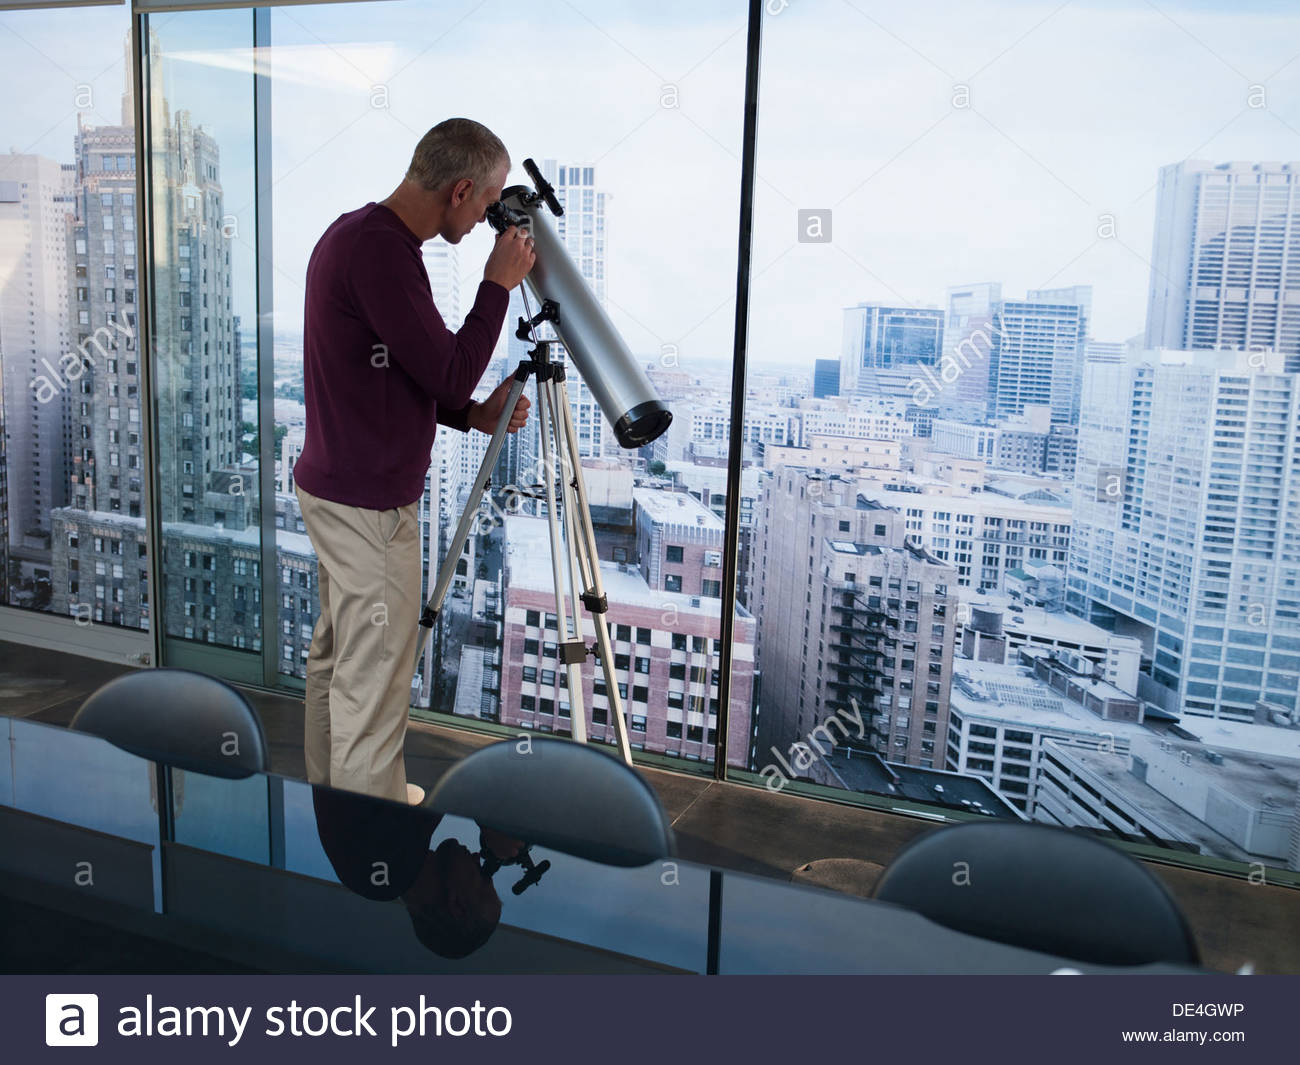 Man using telescope to look at city buildings - Stock Image